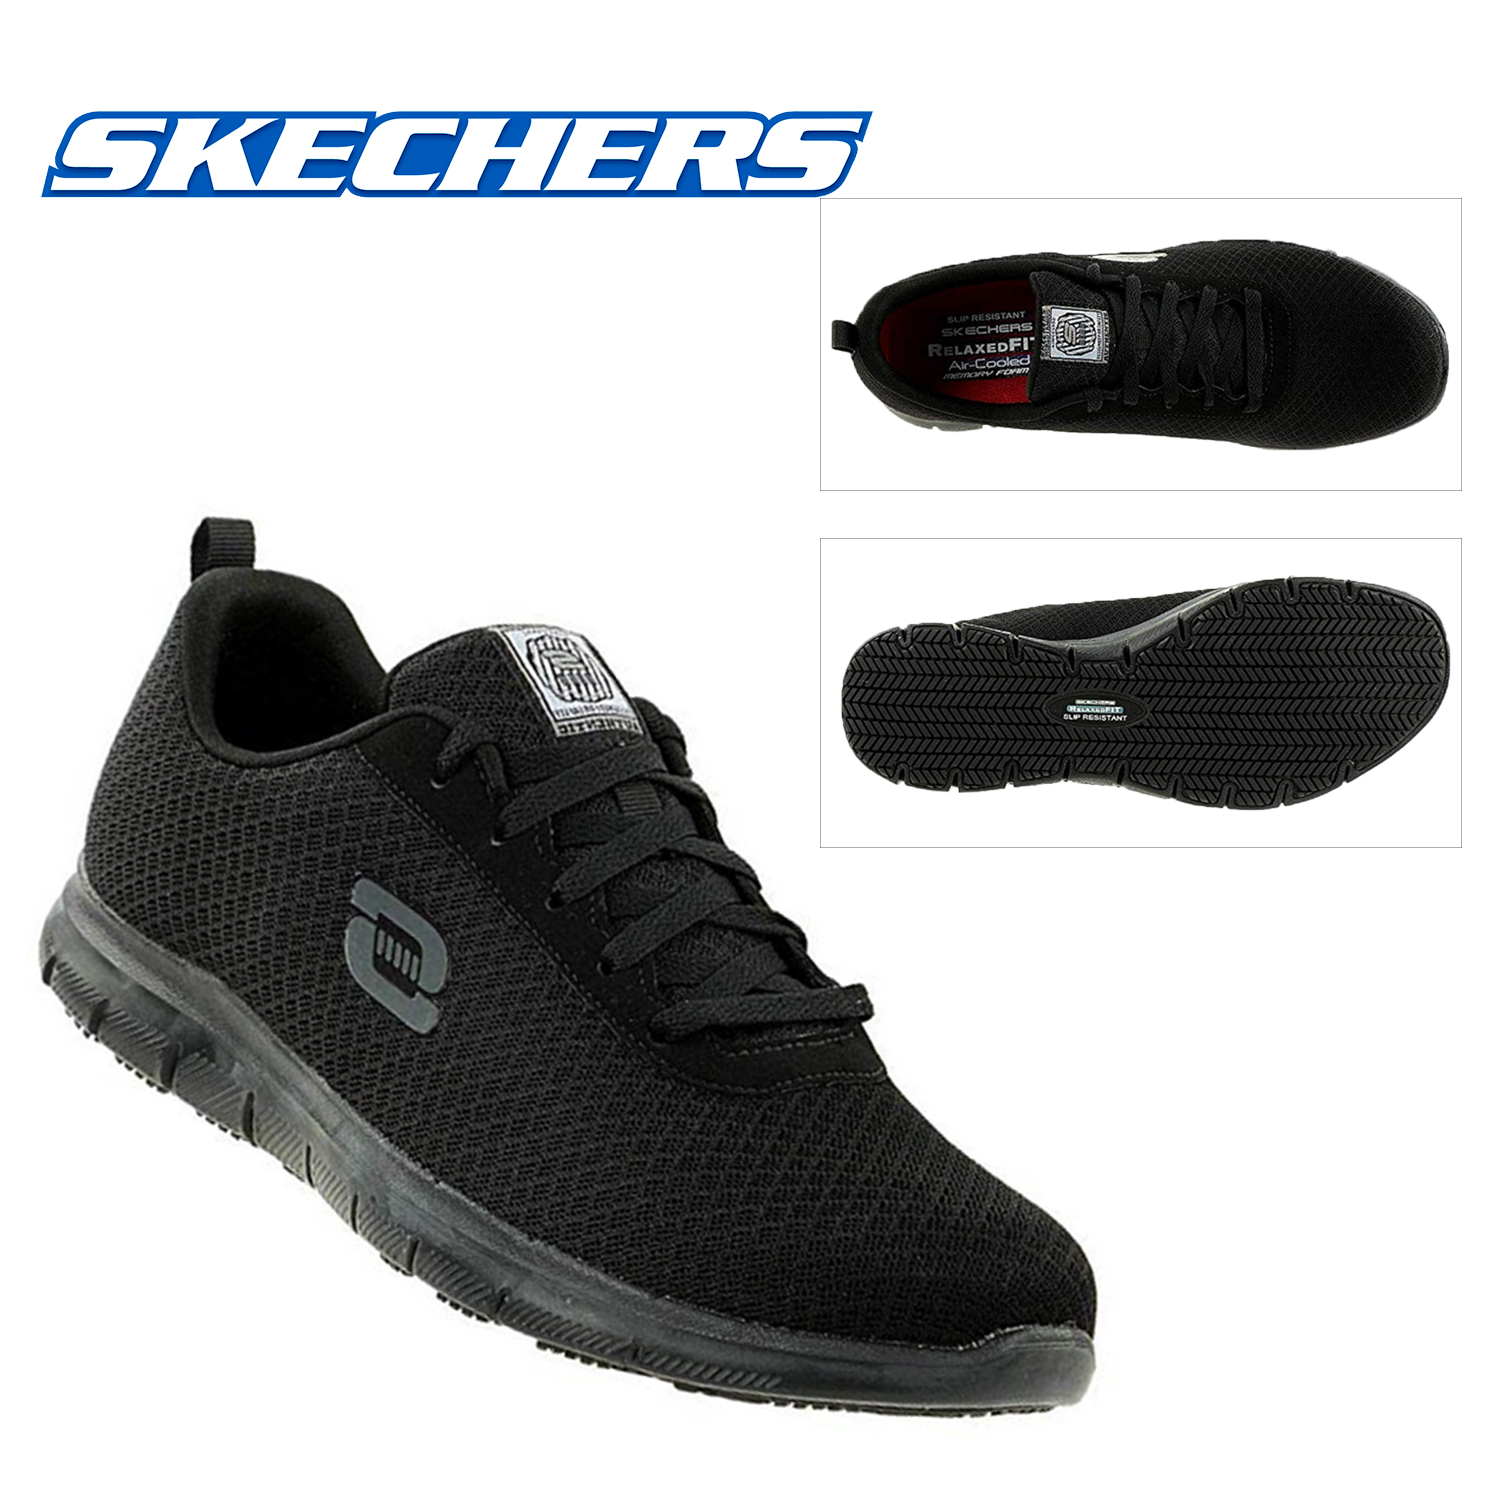 Ghenter Skechers Work Relaxed Fit Bronaugh SR Womens Trainers Shoes 77210EC